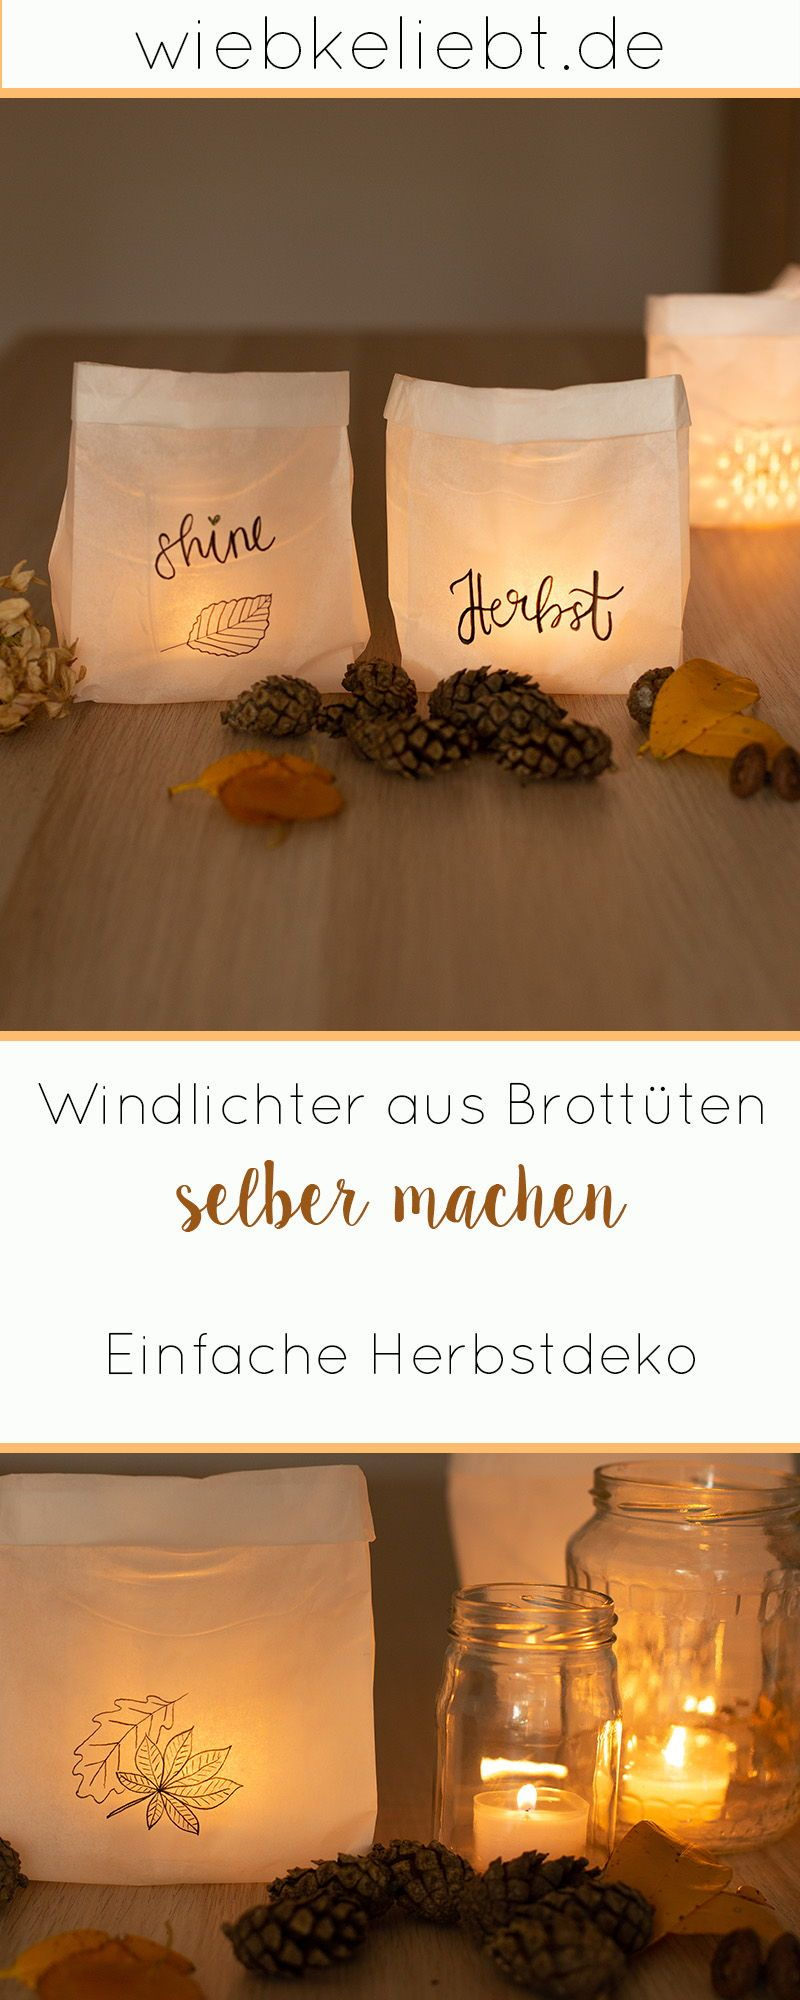 Windlichter aus Brottüten selber machen - DIY Herbstdeko | DIY Blog | Do-it-yourself Anleitungen zum Selbermachen | Wiebkeliebt #decorationevent